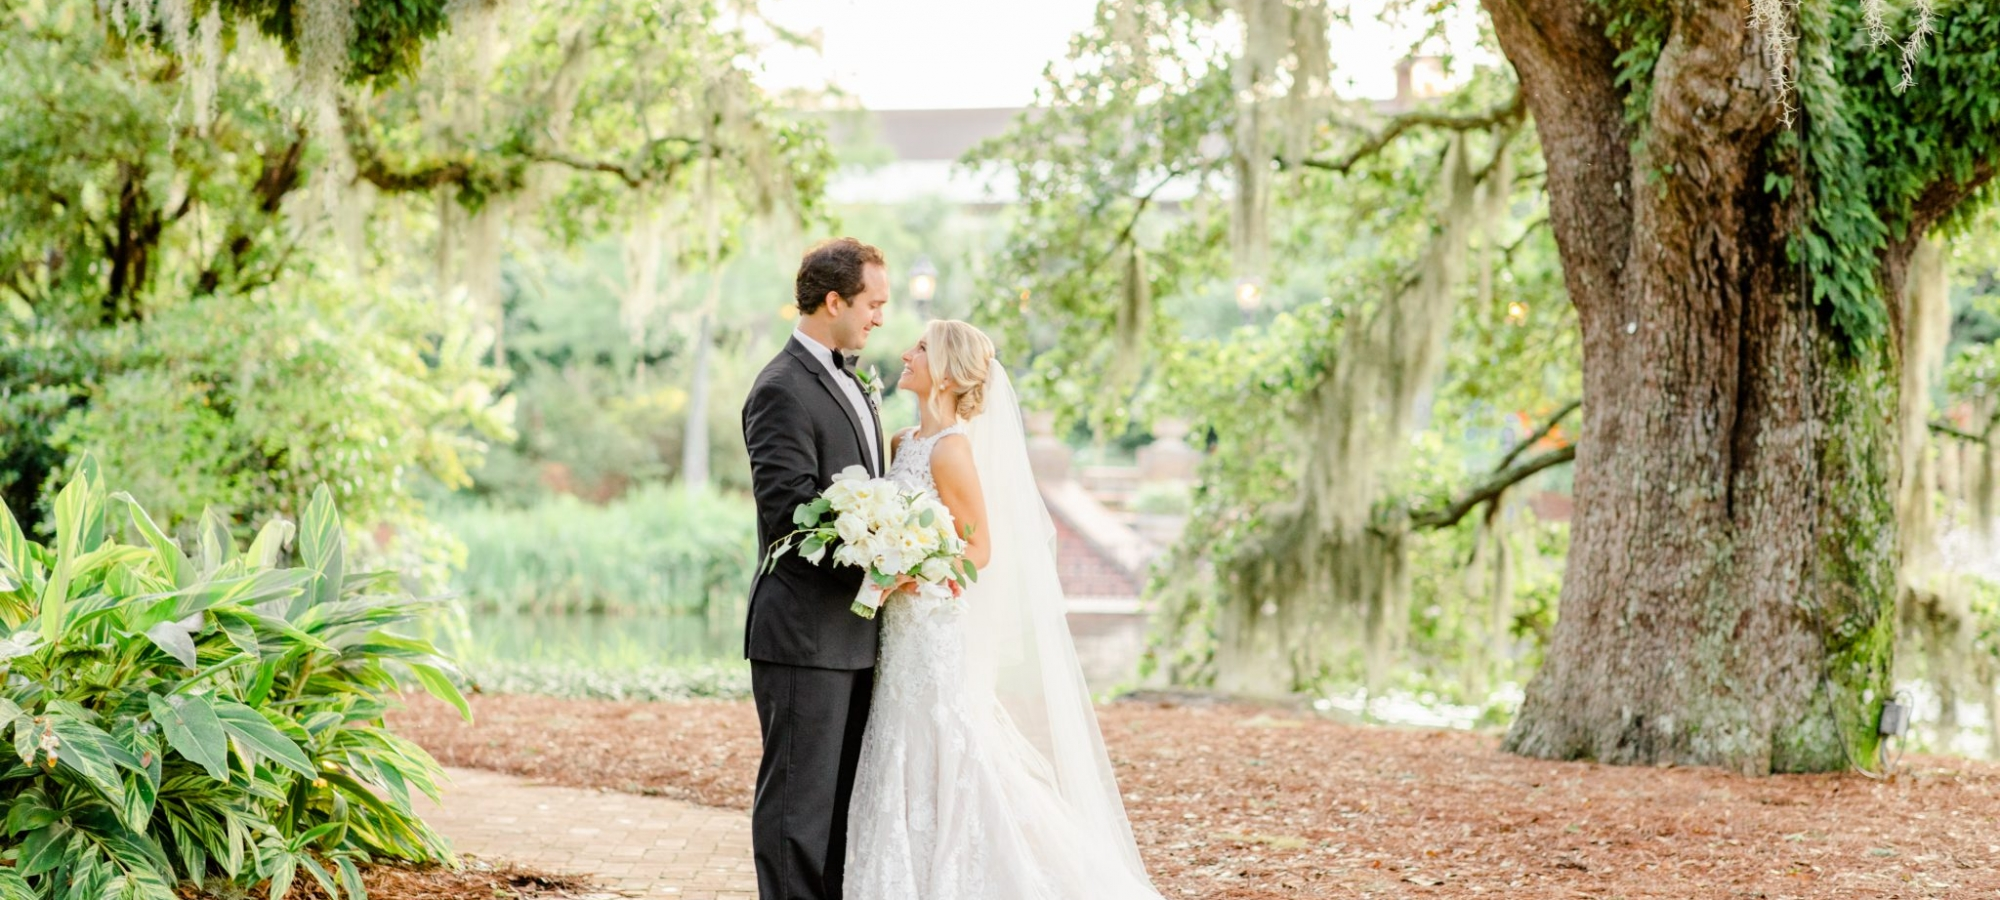 Wedding-at-the-Grand-in-Point-Clear-Fairhope-Anna-Filly-Photography-Sneak-Peeks-Cross-wedding -36